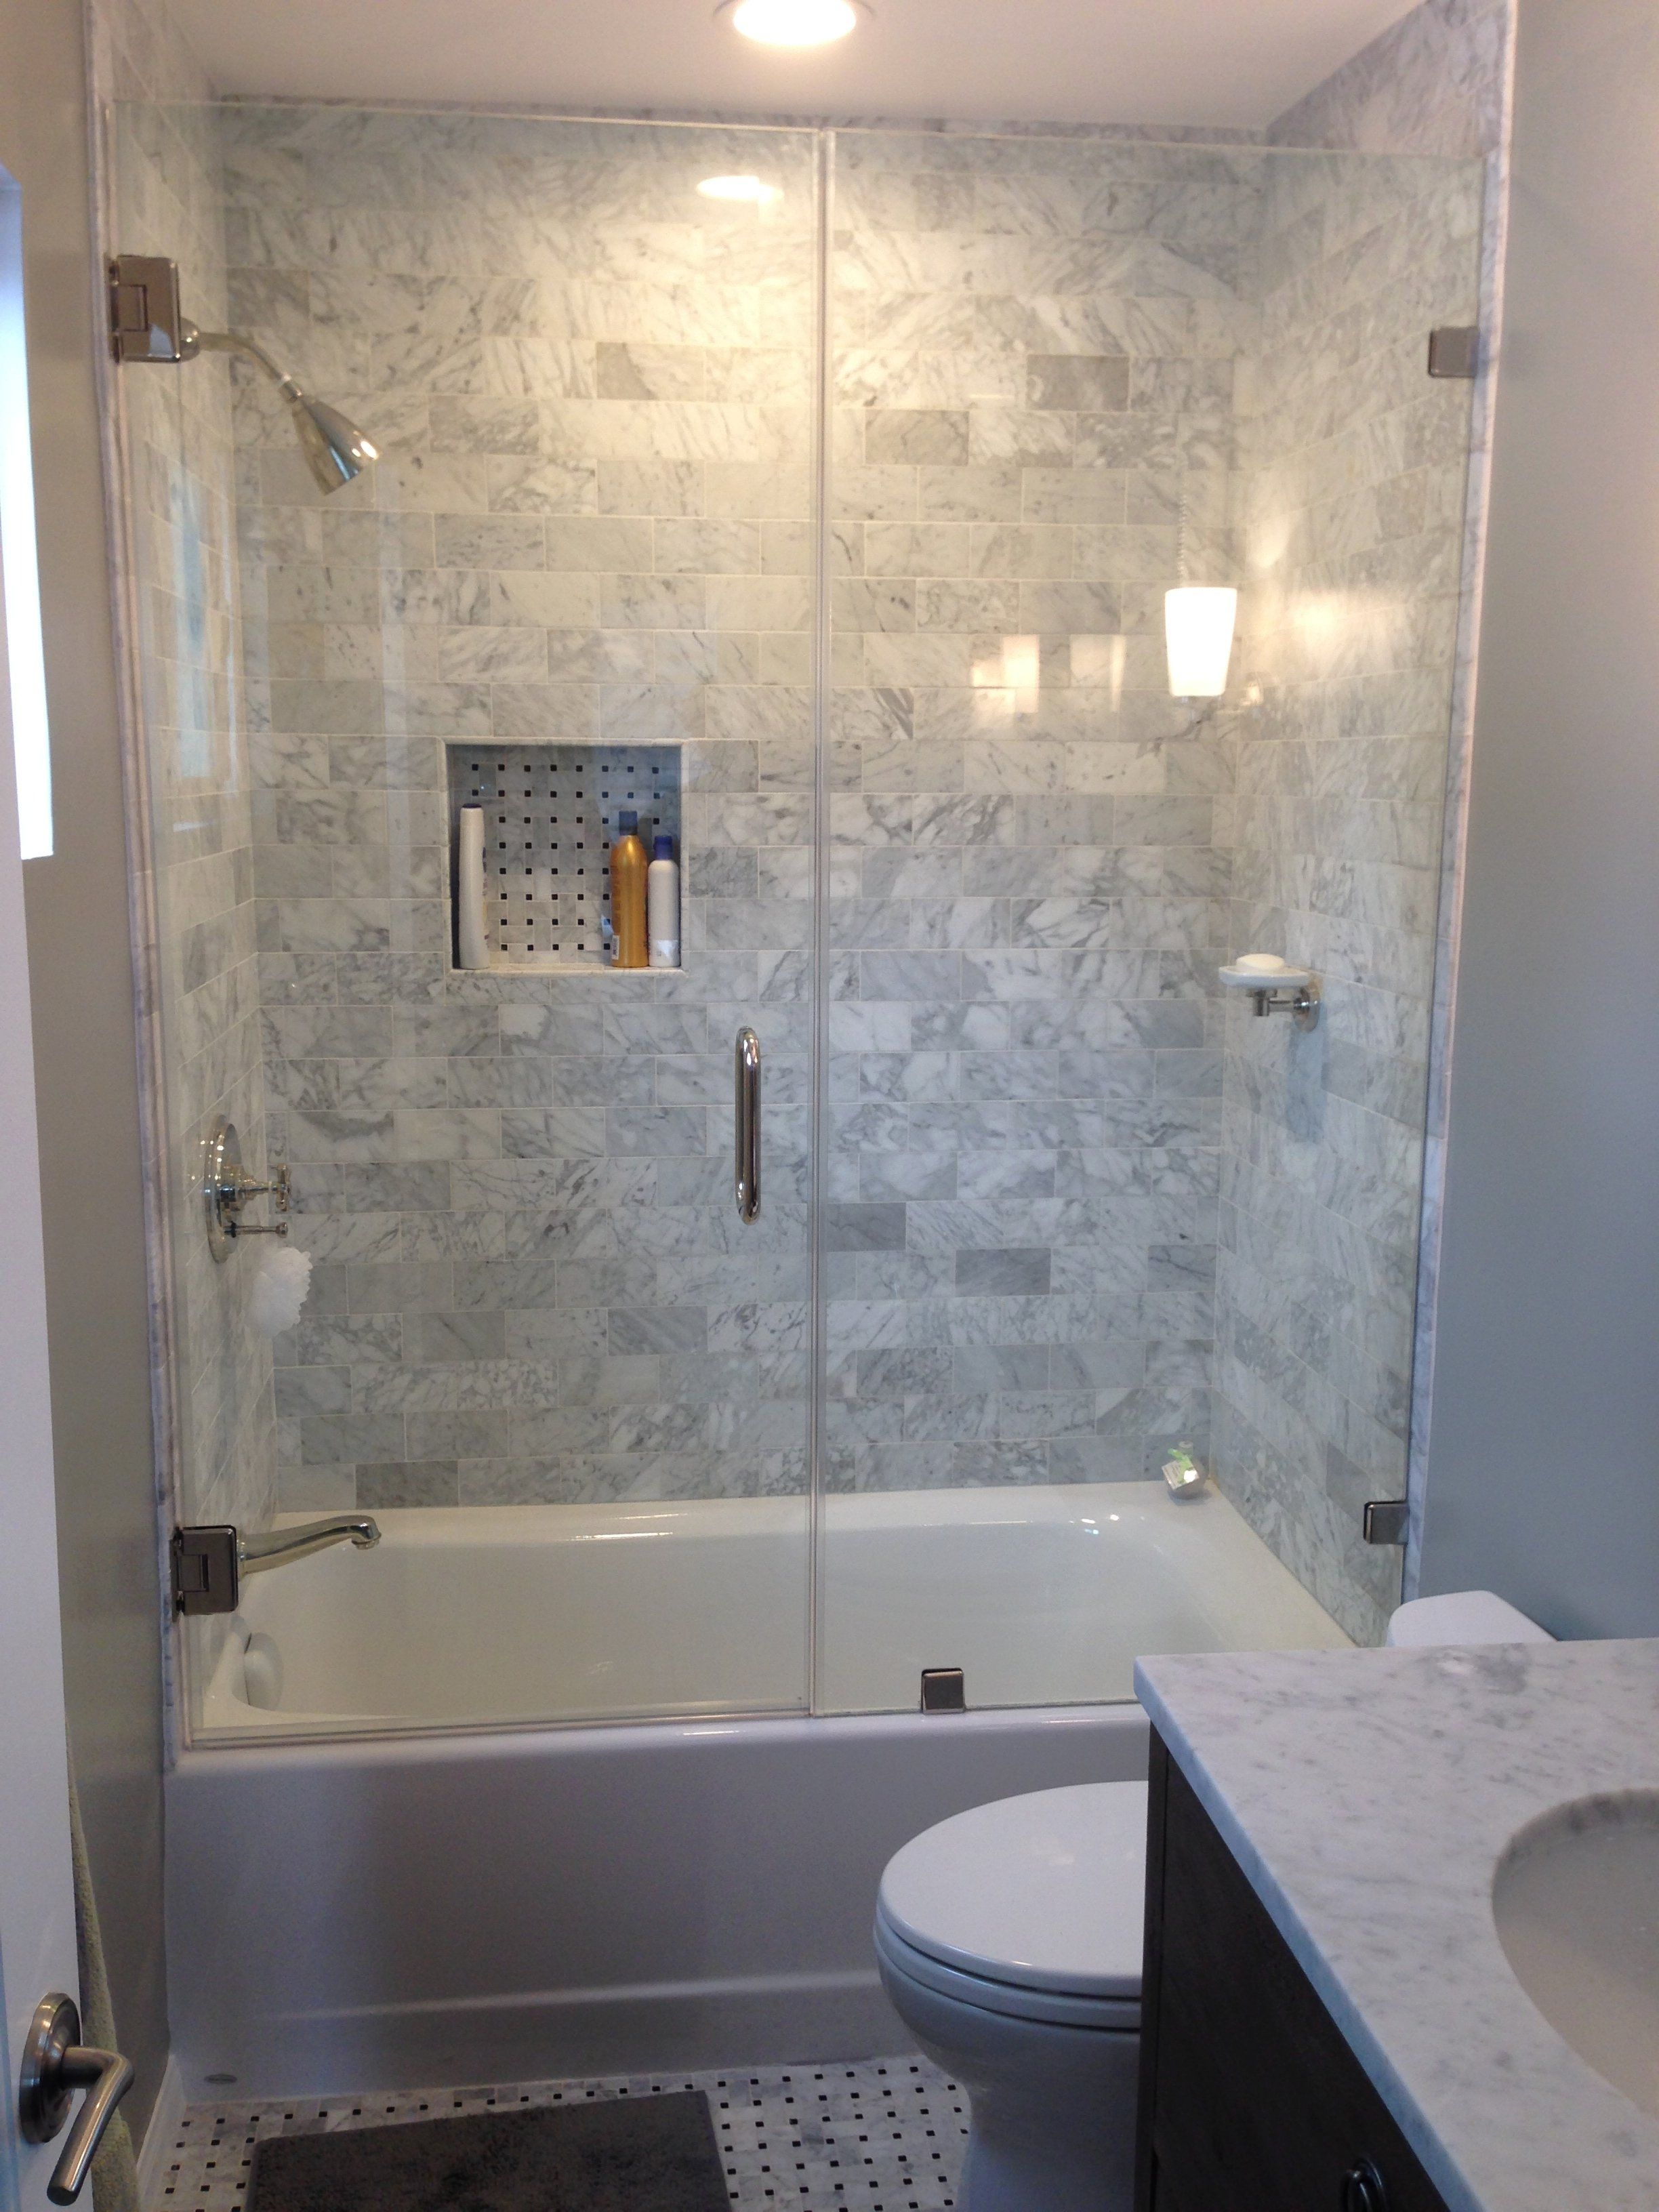 The Gorgeous Basement Bathroom Remodel Ideas With Small Basement Bathroom Ideas Buddyberries Is One Of Best Image Bathroom Remodel Designs Bathroom Design Small